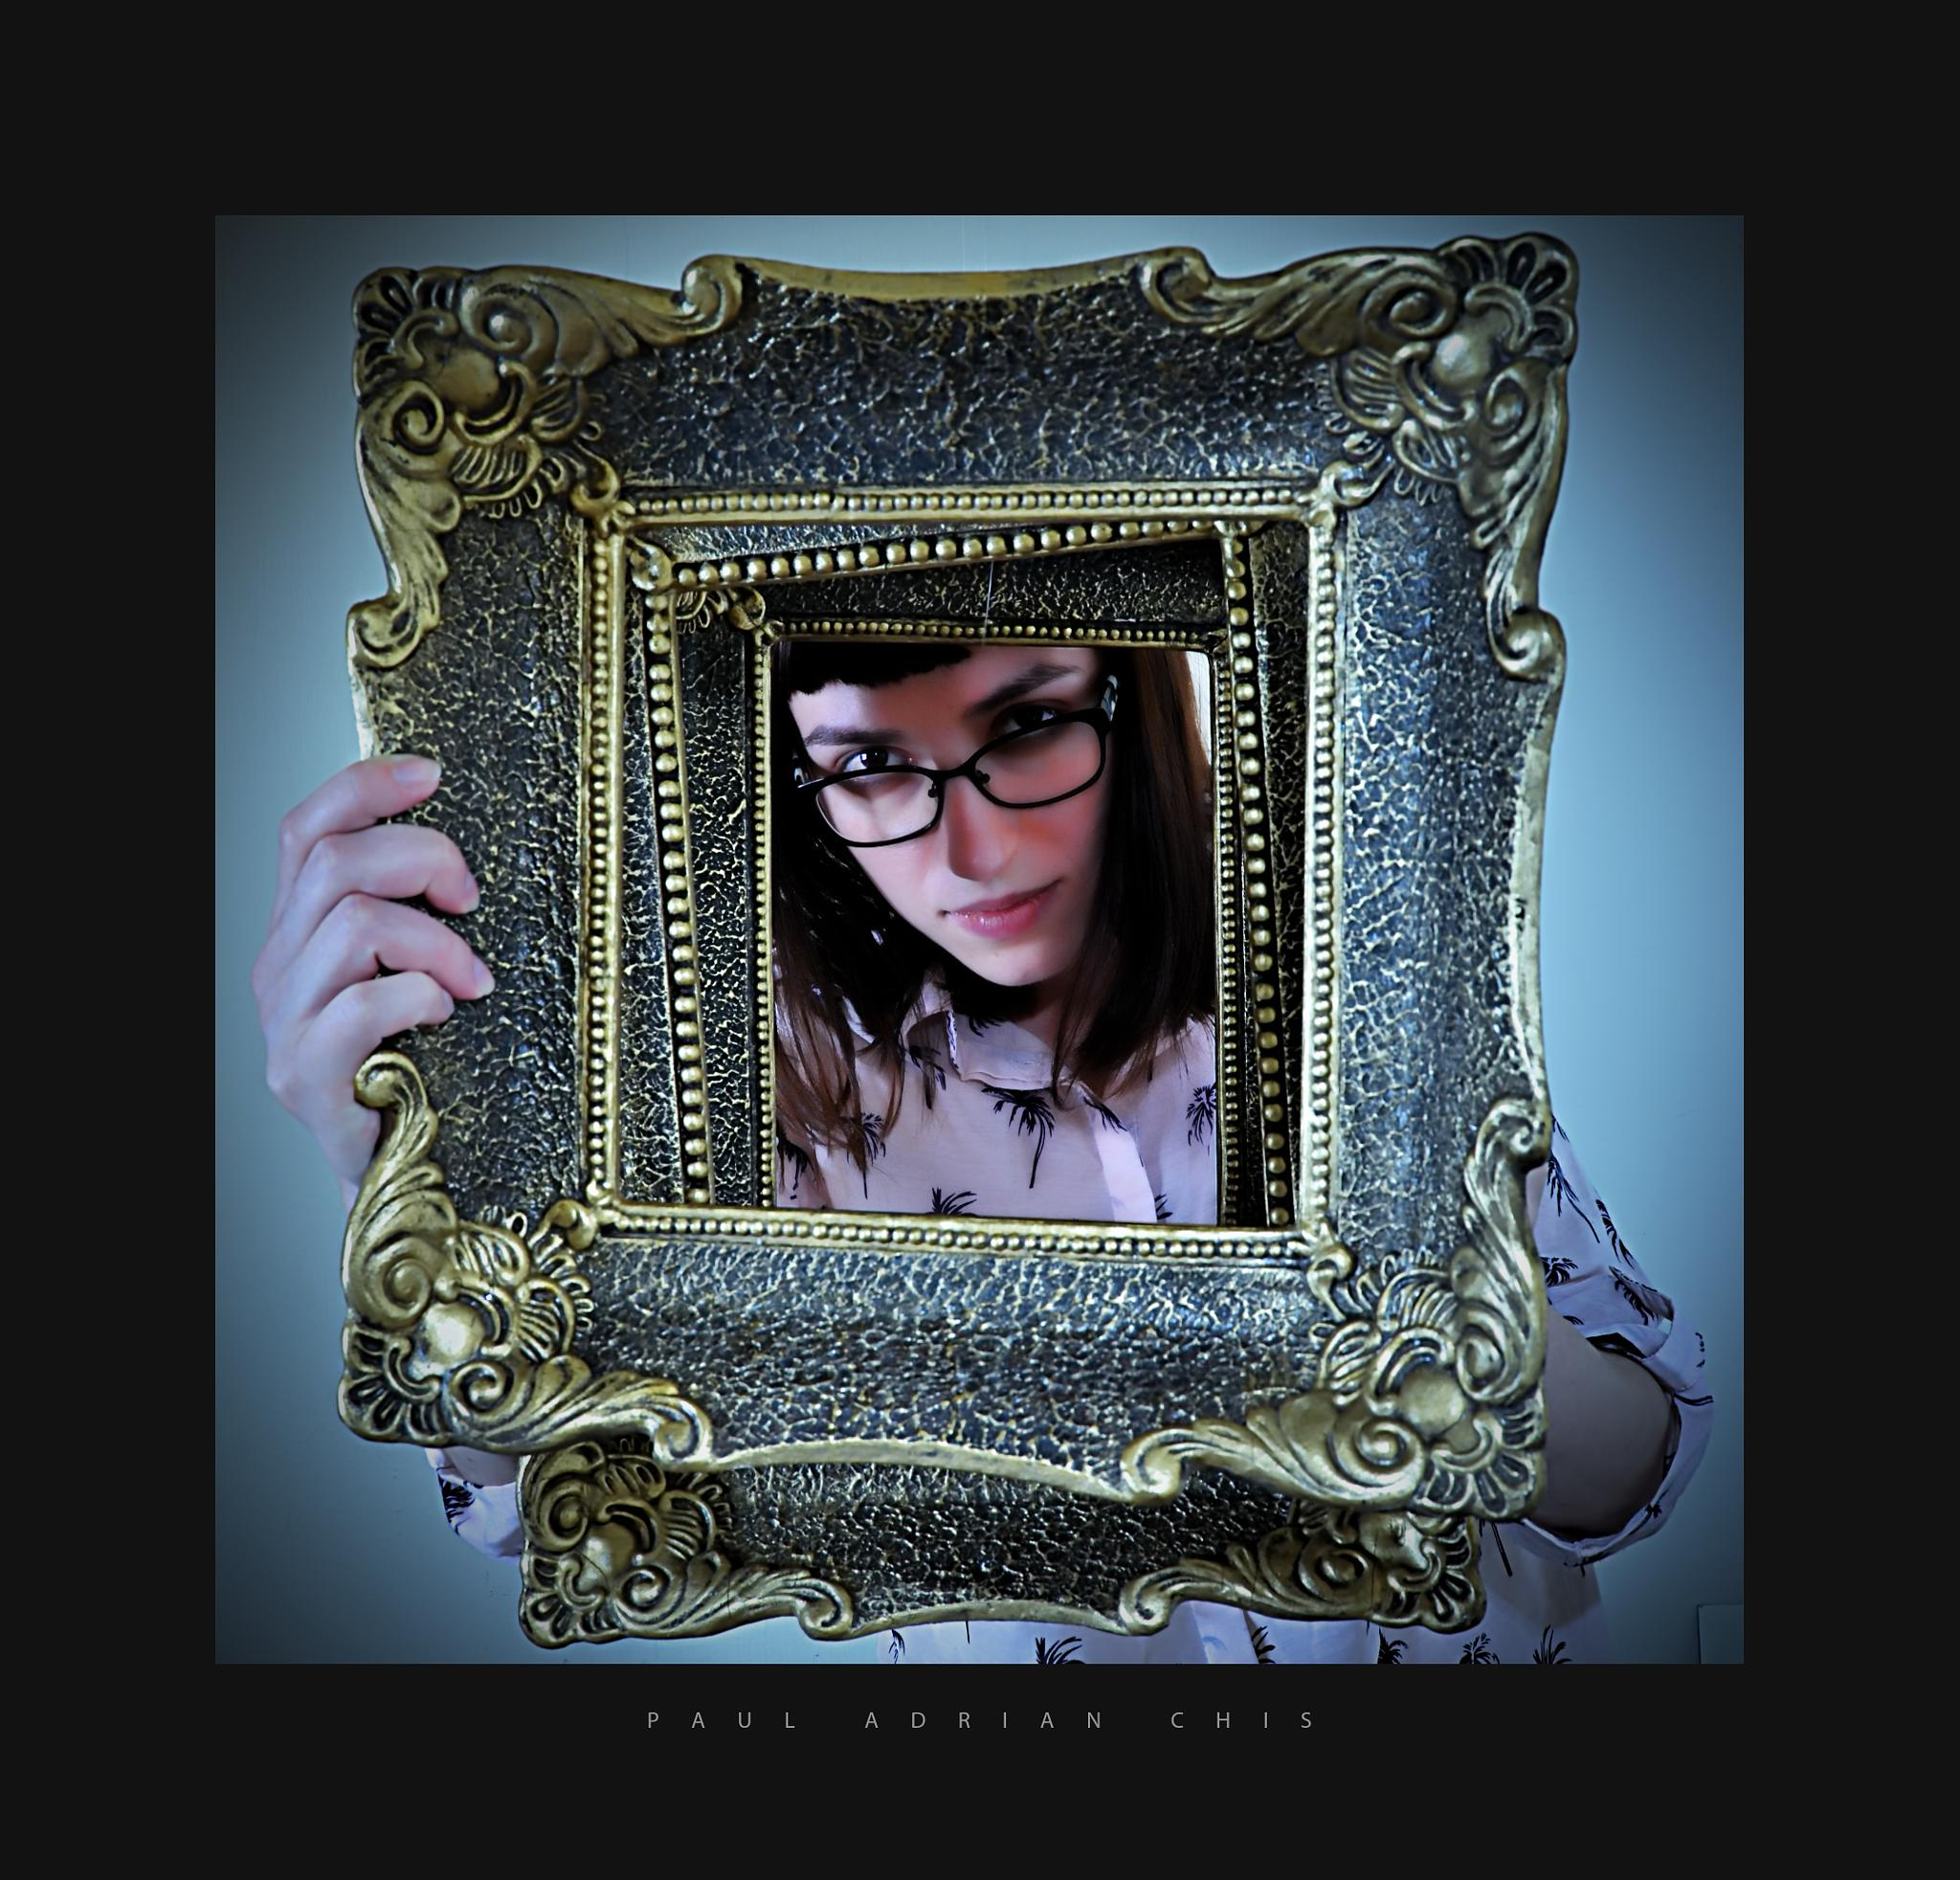 ART & FRAMES by Paul Adrian Chis